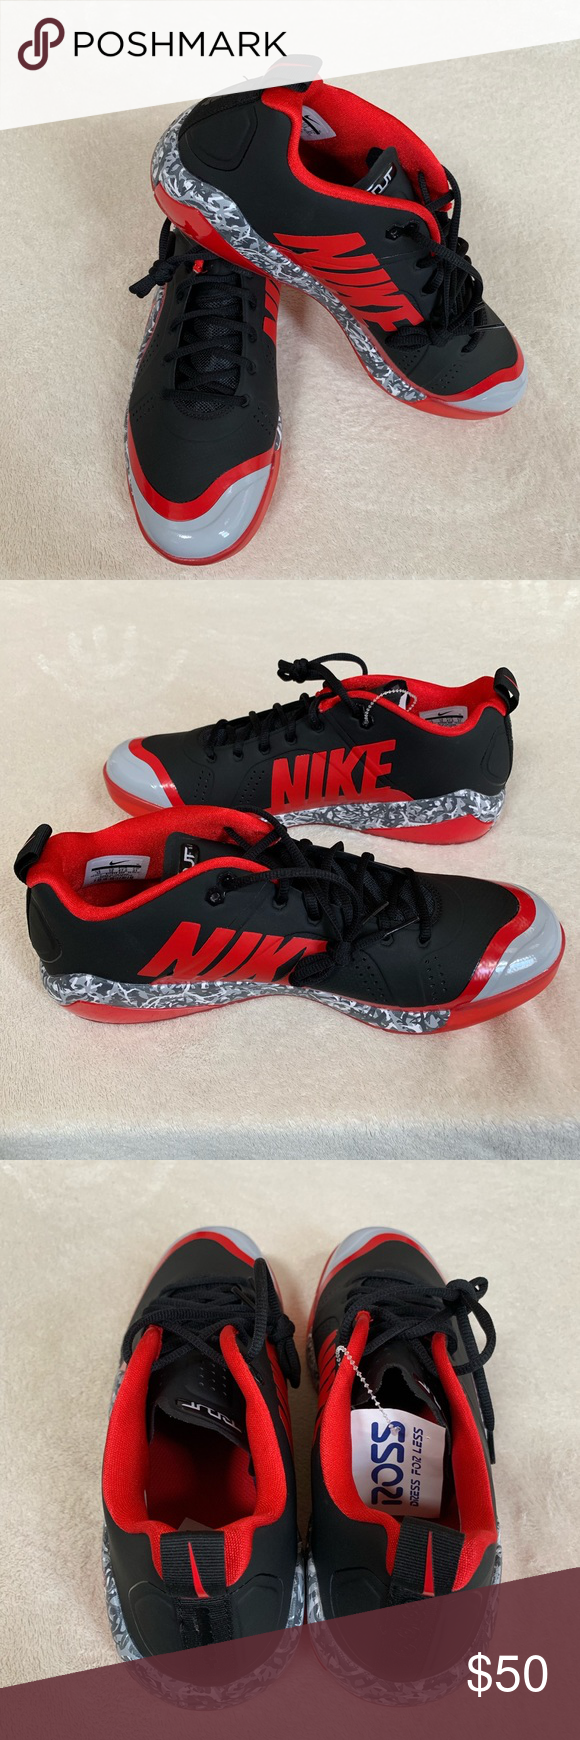 77f83d681a34c Nike Zoom Trout 4 Turf 917838-060 Black Red Grey Nike Zoom Trout 4 Turf  Trainer TF Baseball Shoes asg Black Red Gray Camo New without box size 13  917838-060 ...